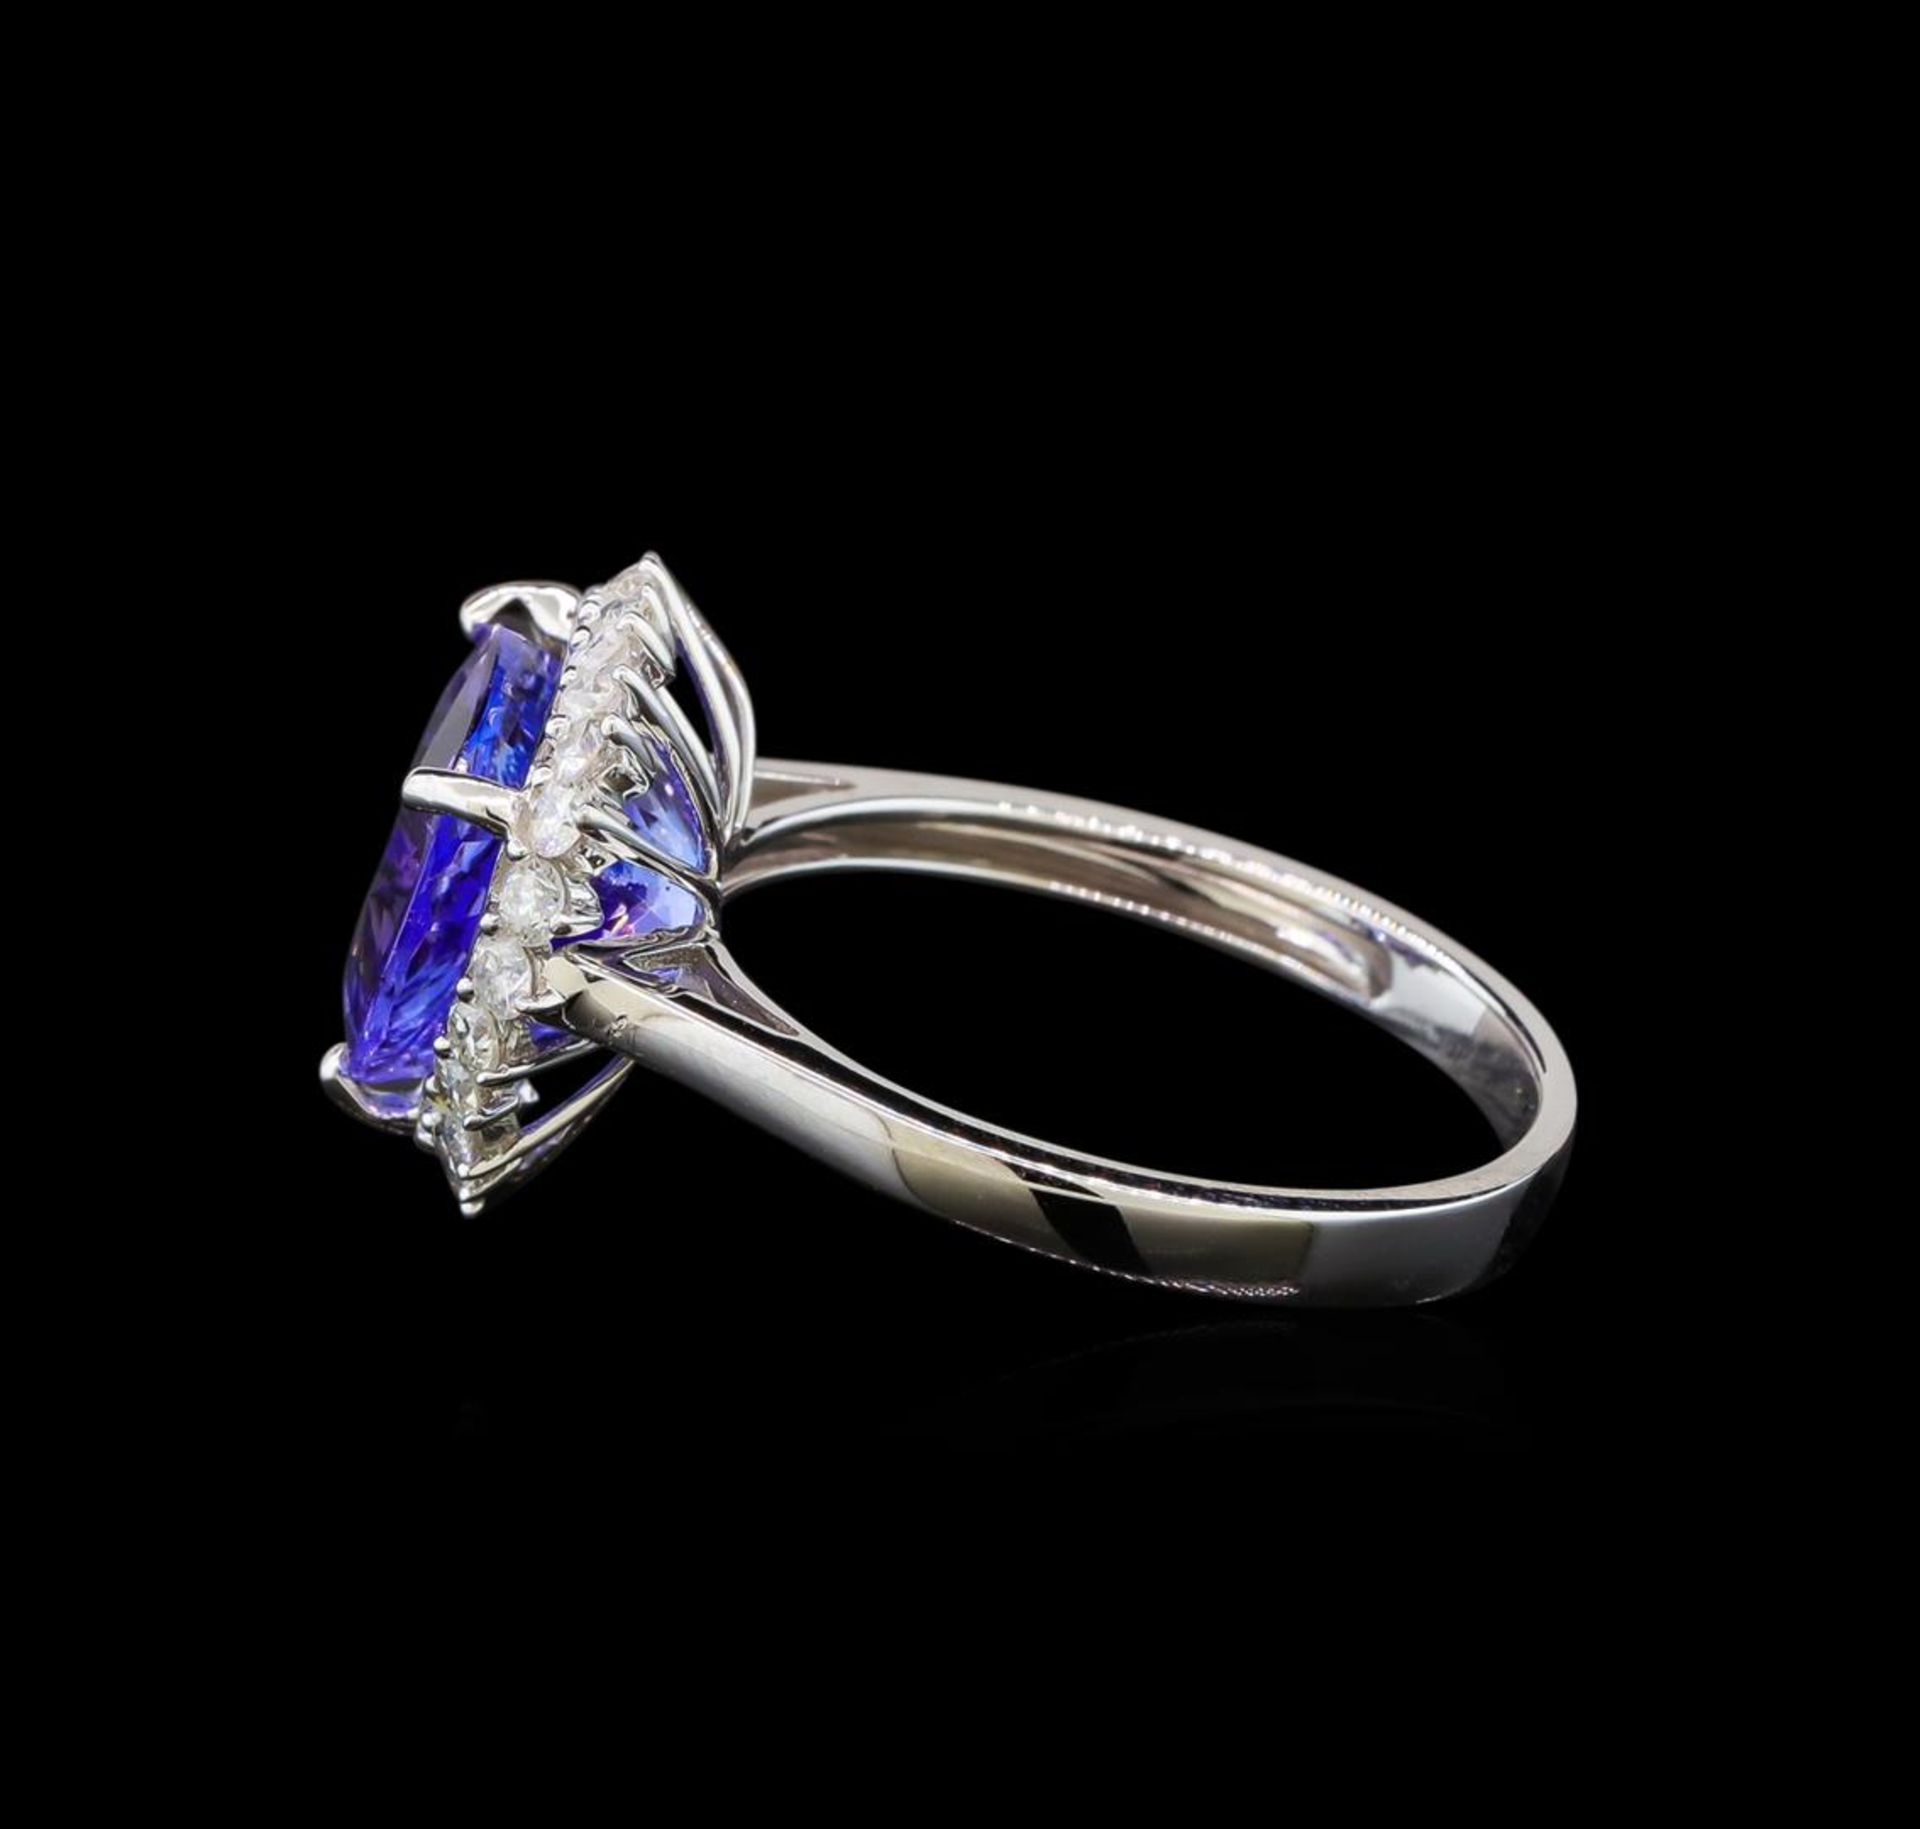 14KT White Gold 2.78 ctw Tanzanite and Diamond Ring - Image 3 of 5